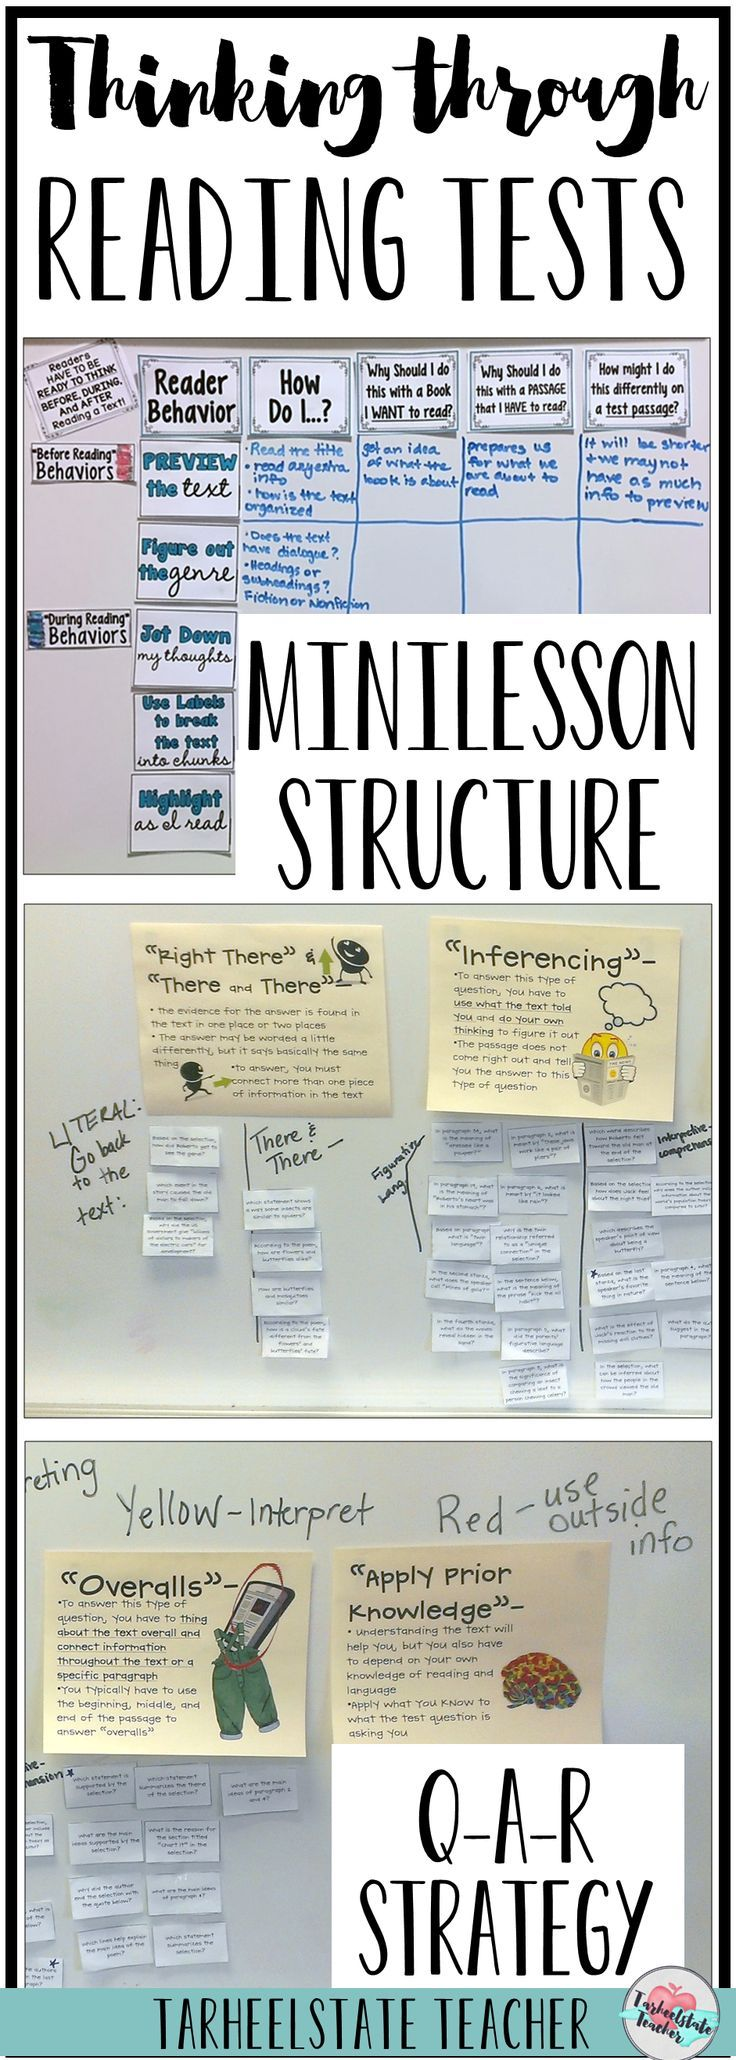 """Is it reading test prep season again? This test-talk minilesson structure for helping students understand the design of standardized reading tests, question-answer relationship strategy (QAR anchor chart), and 4 step reading test strategy for answering questions comes in handy every year for our reading test prep strategies unit to prepare for standardized reading comprehension tests. You'll want to include this """"Thinking Through Reading Tests"""" resource into your reading test revie"""